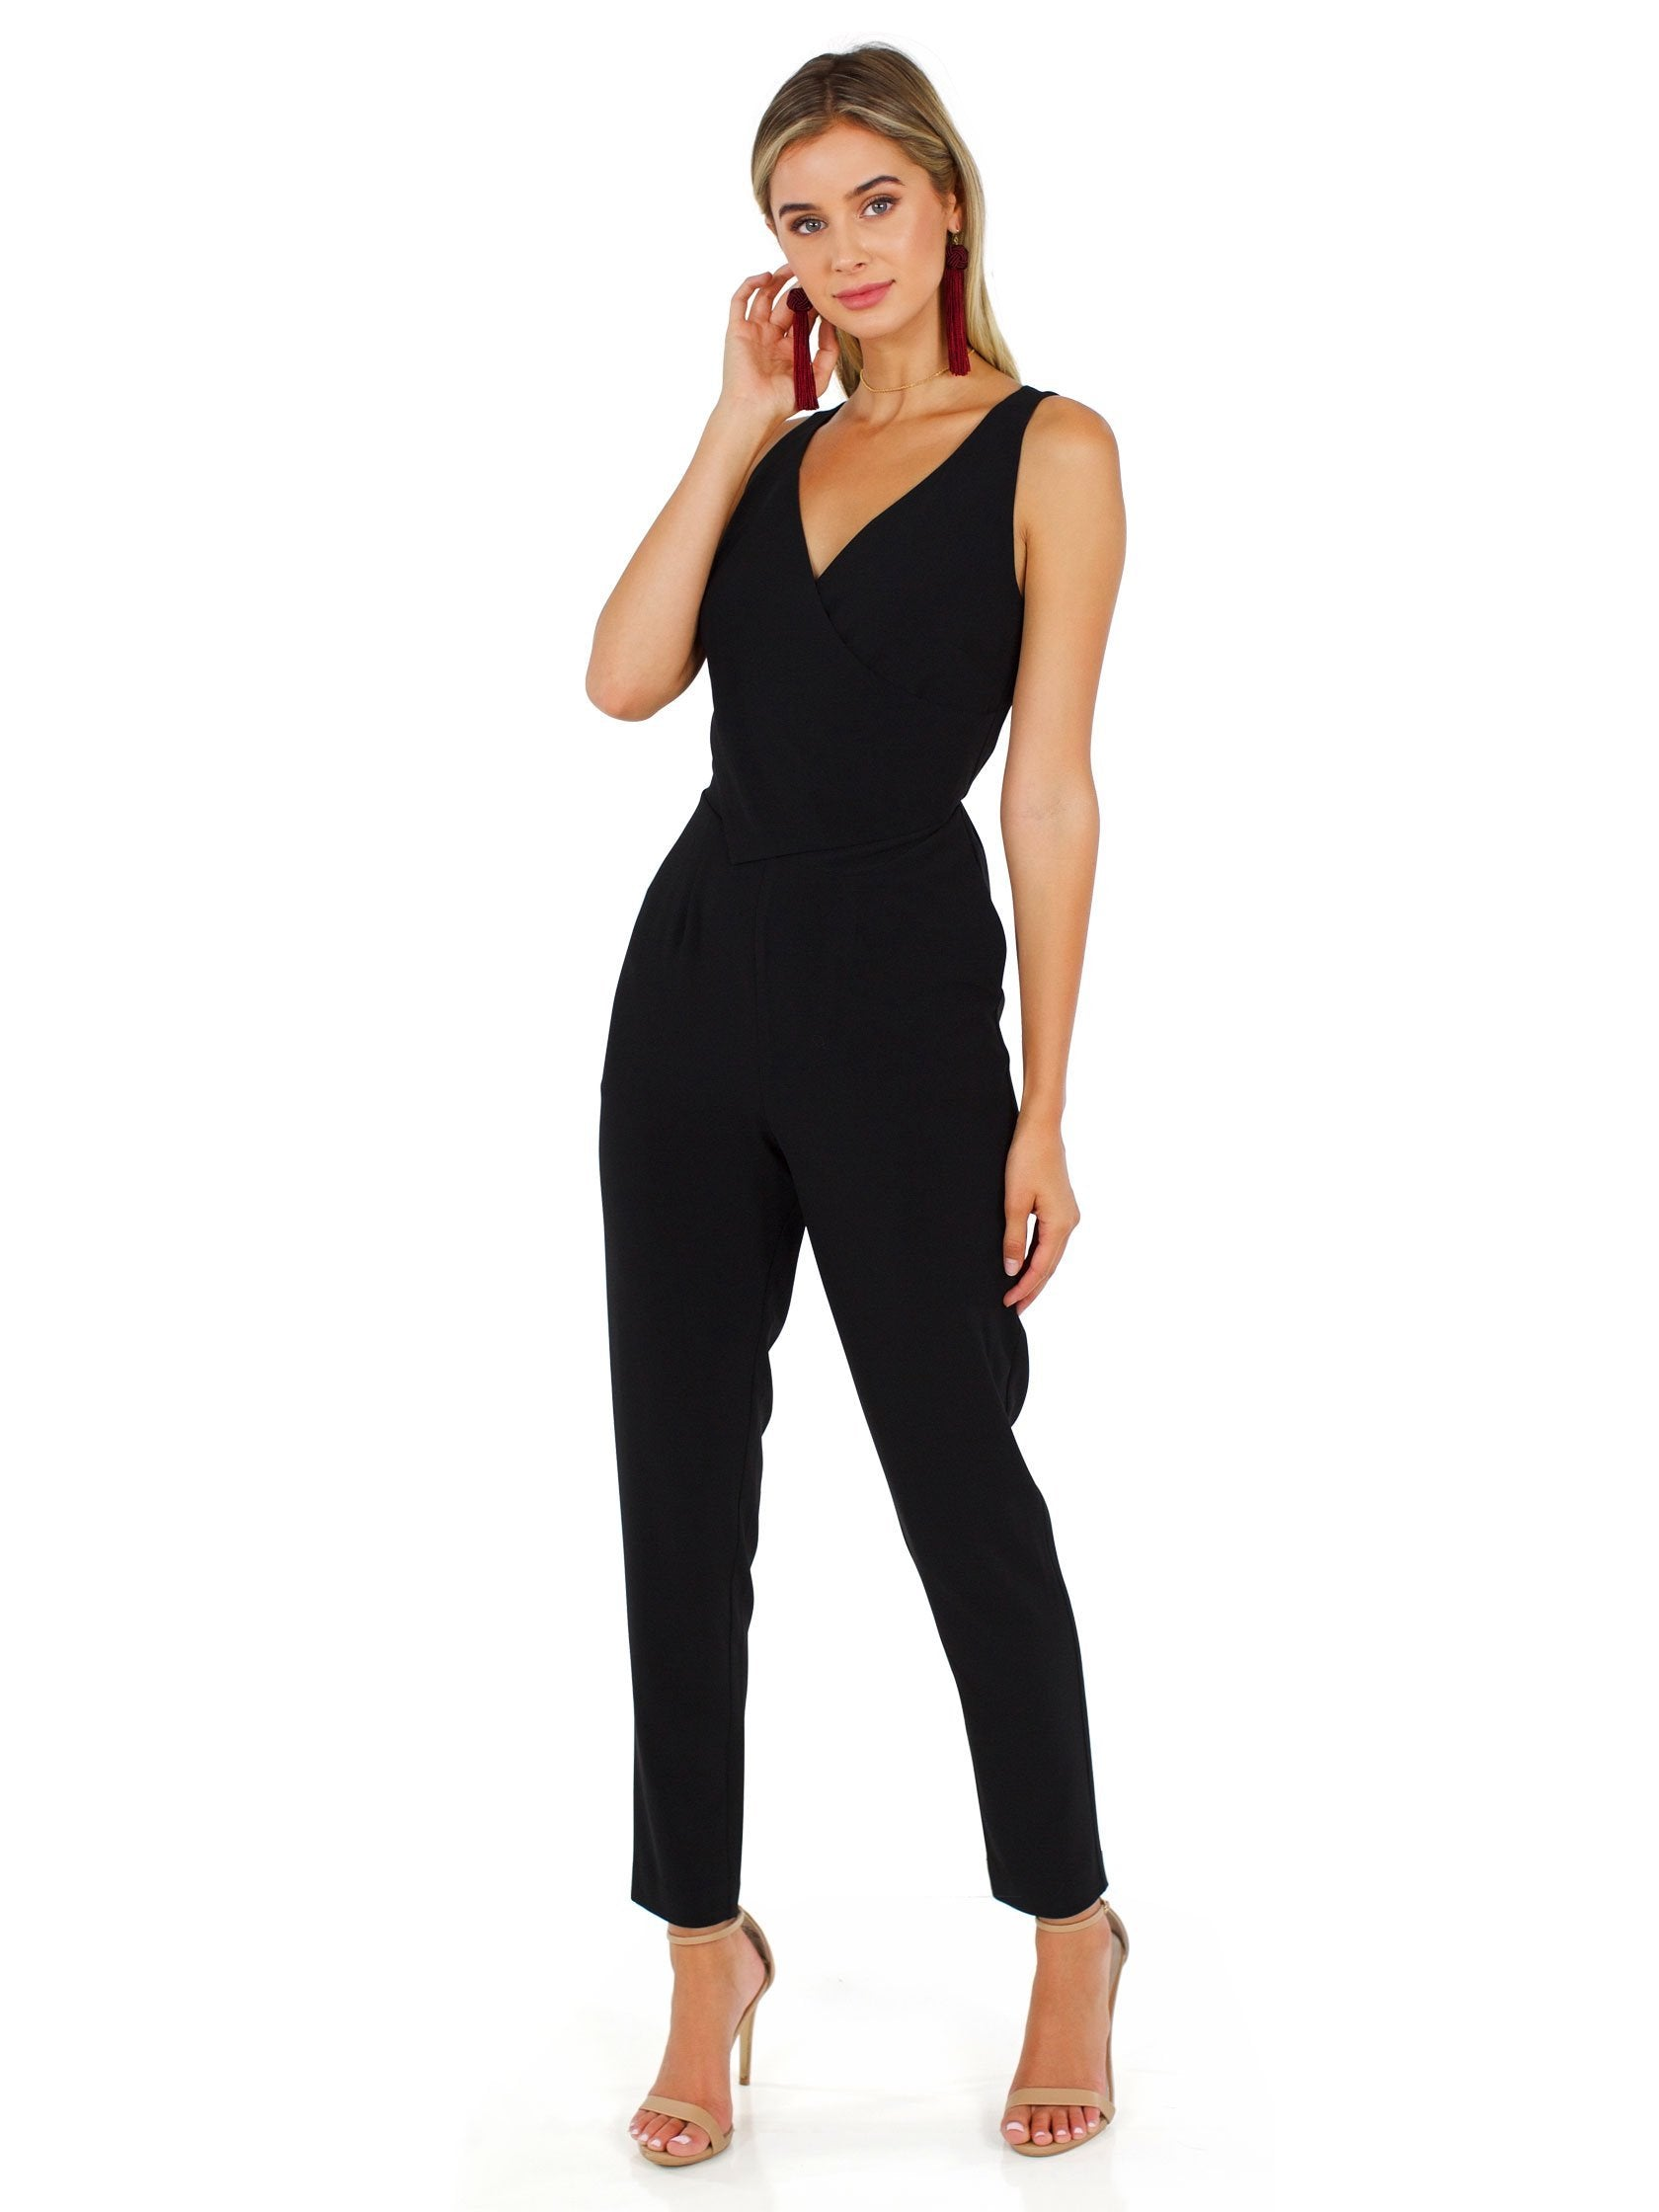 Girl outfit in a jumpsuit rental from Ali & Jay called You're So Classic Jumpsuit